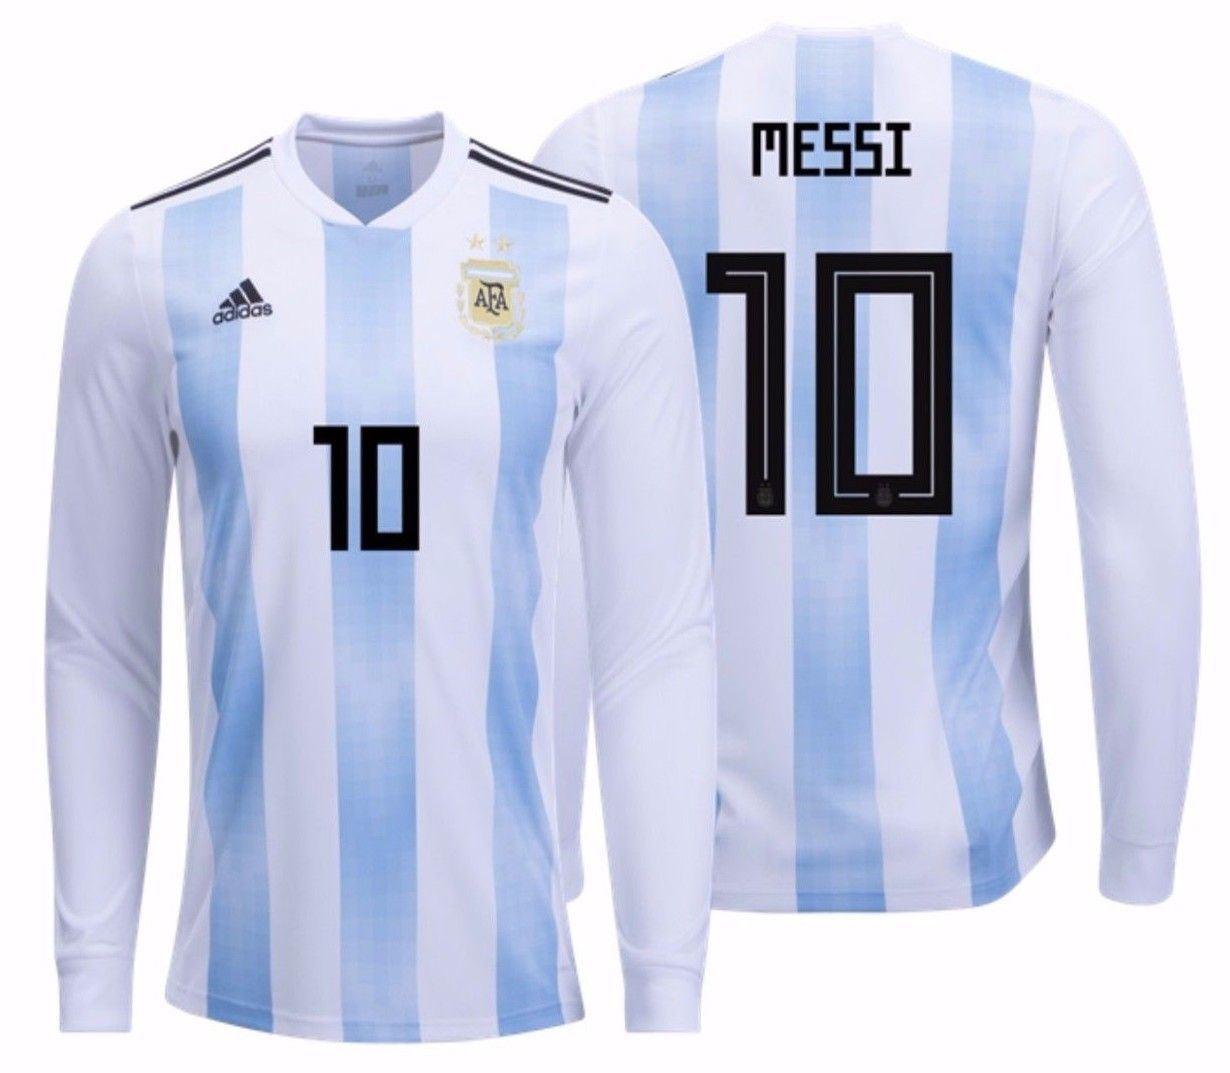 S l1600. S l1600. Previous. ADIDAS LIONEL MESSI ARGENTINA LONG SLEEVE HOME  JERSEY FIFA WORLD CUP 2018. 696761f37